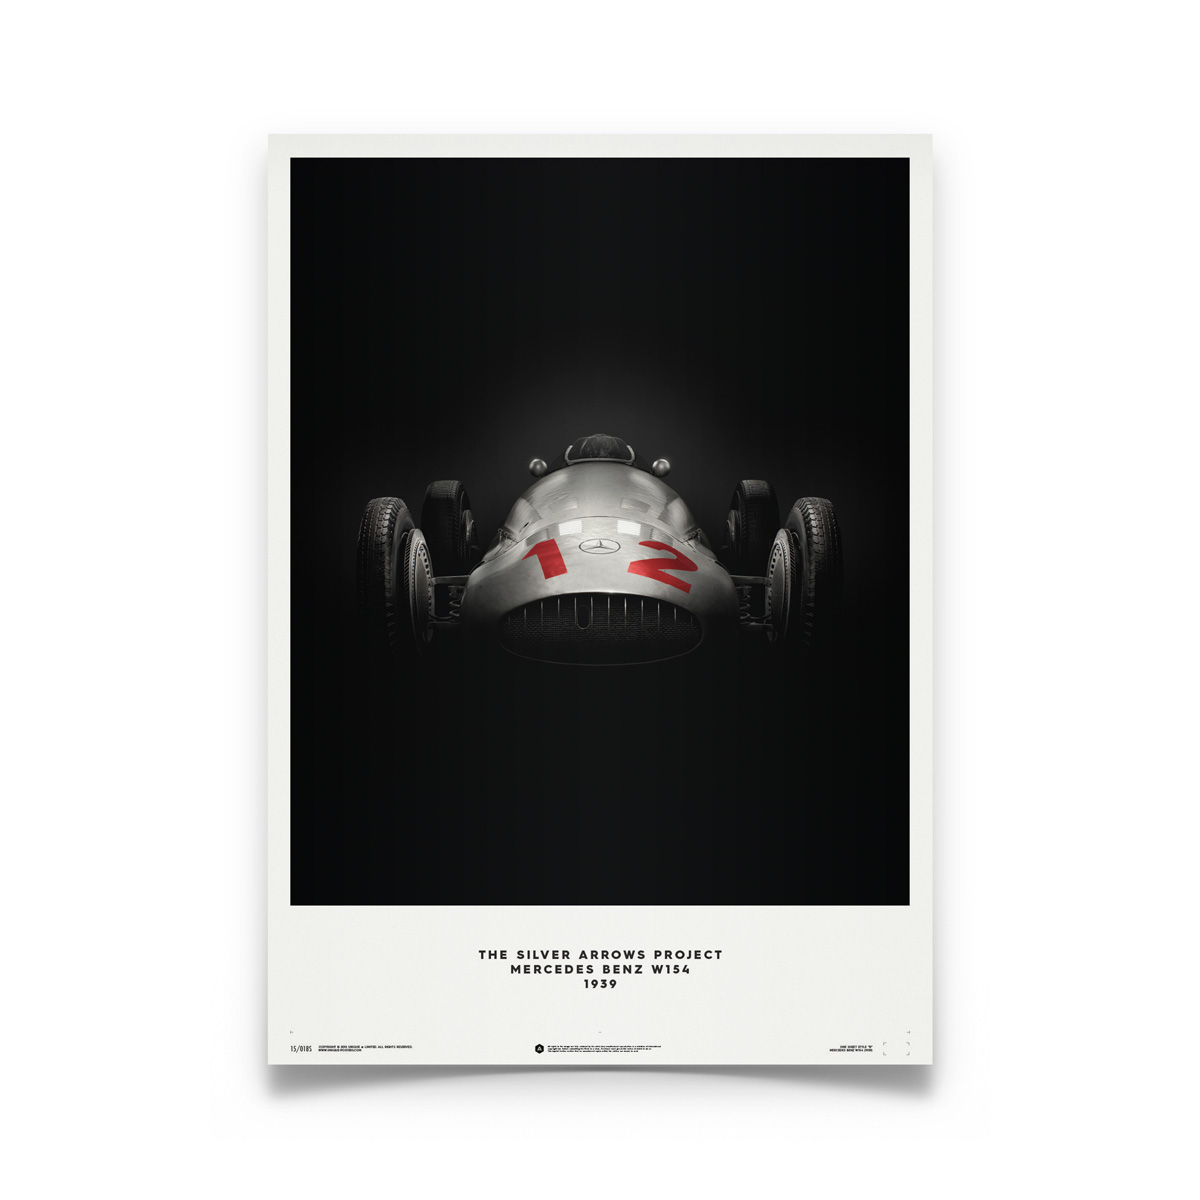 Product image for Mercedes Benz W154 Silver 1938 Poster